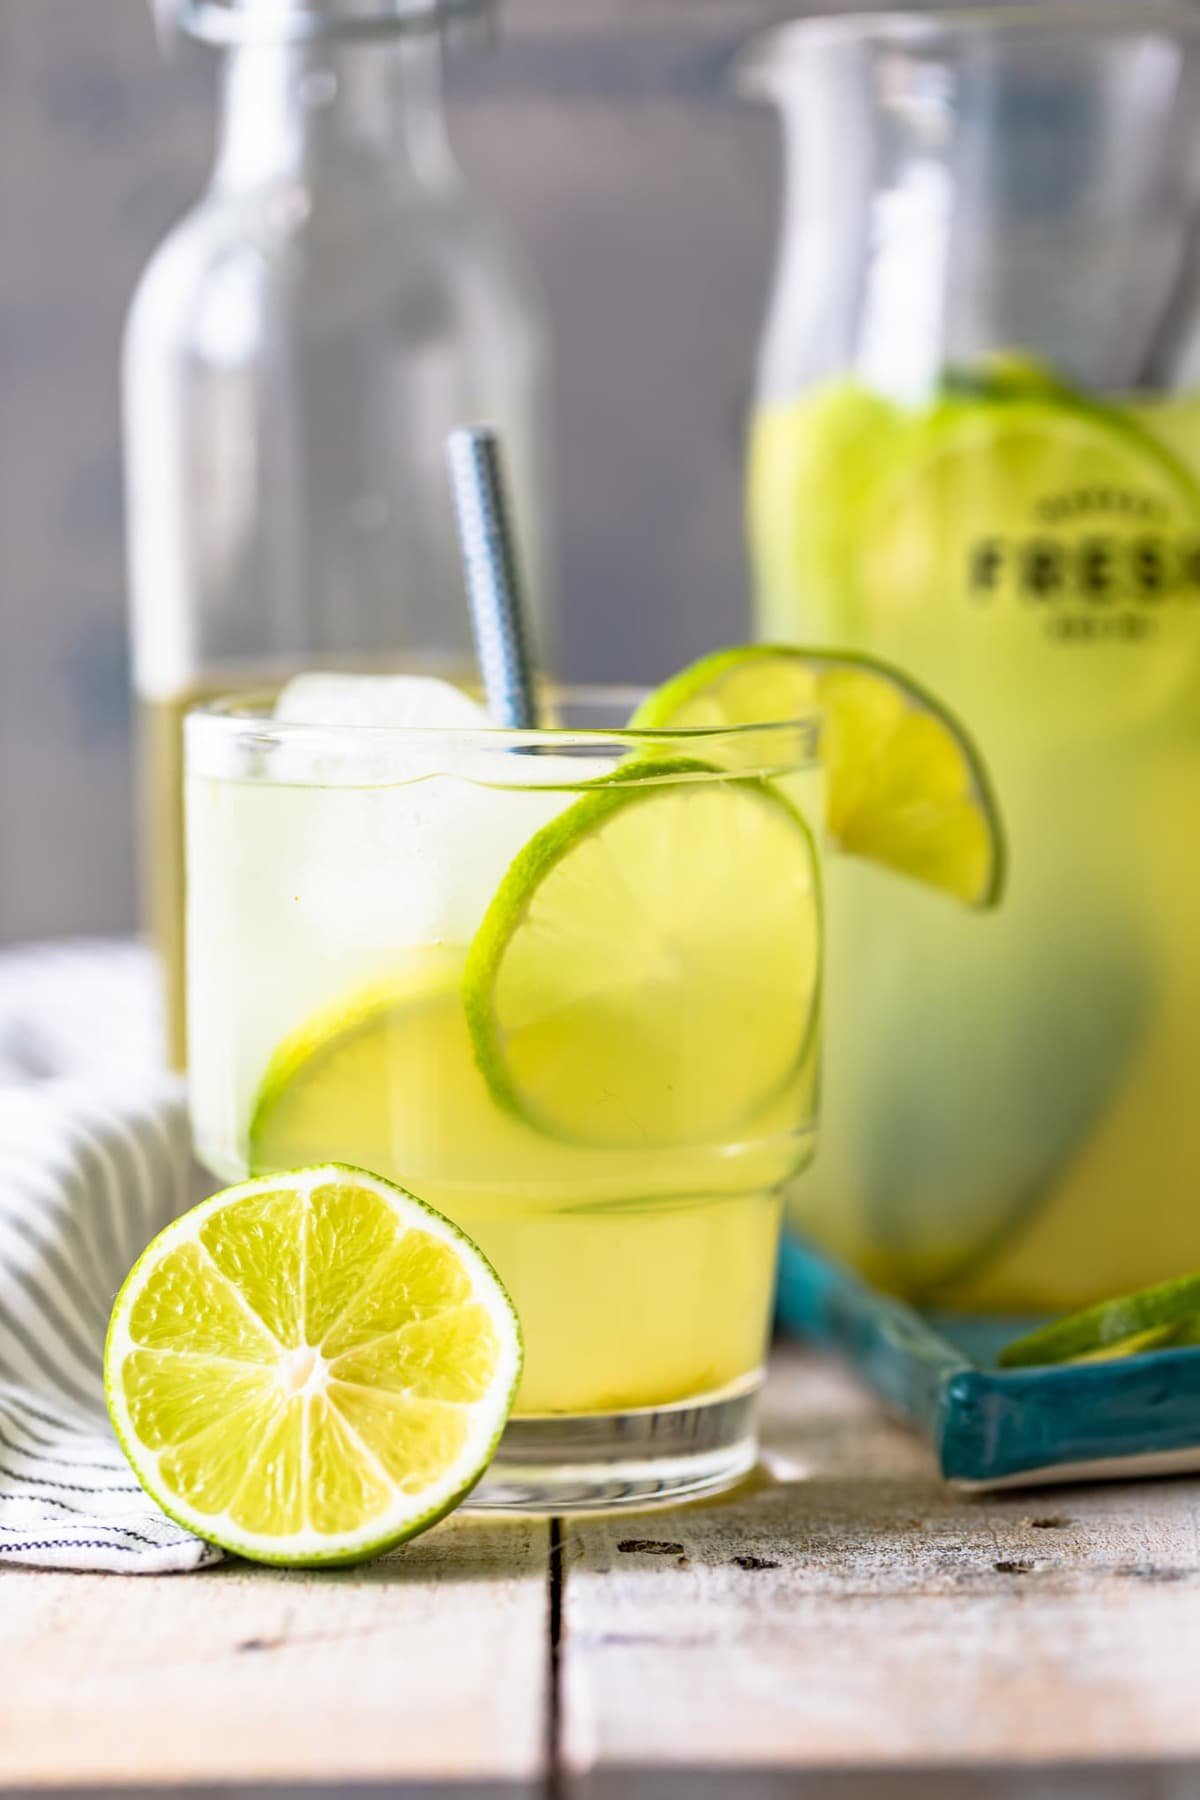 glass of limeade with slices of lime in it